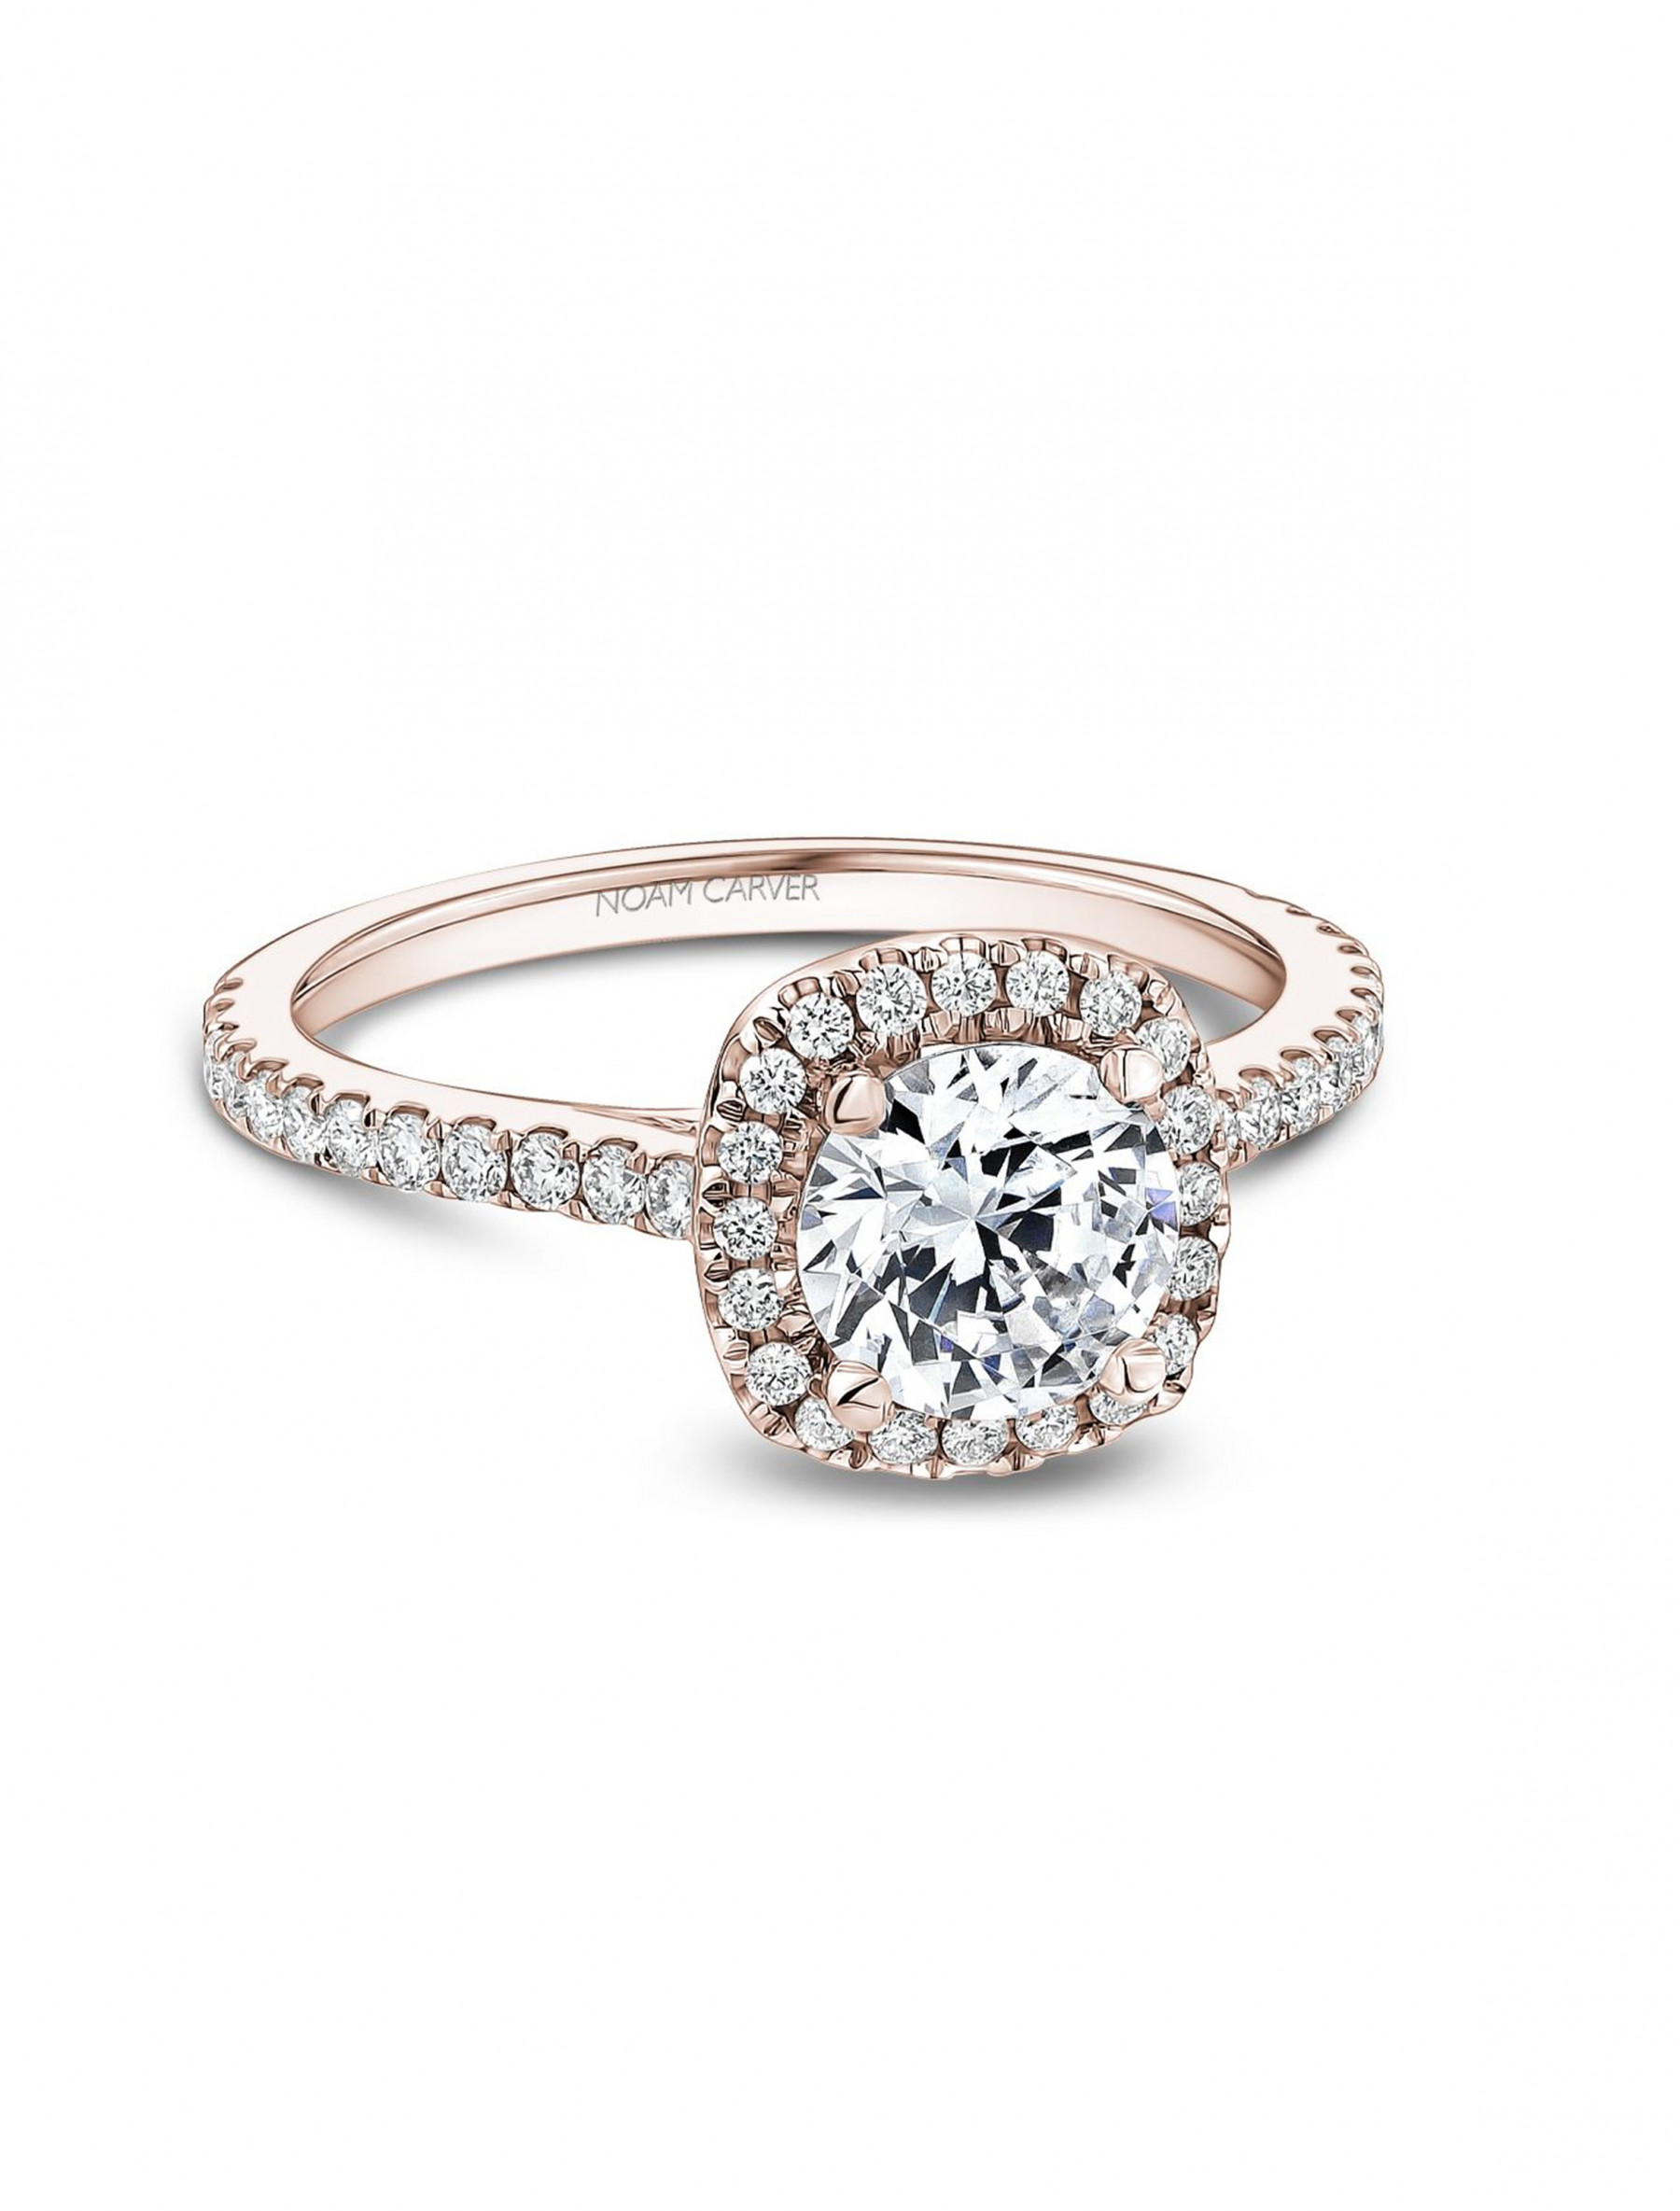 Noam Carver Round Cushion Halo Diamond Engagement Ring Setting in 18K Rose Gold main view